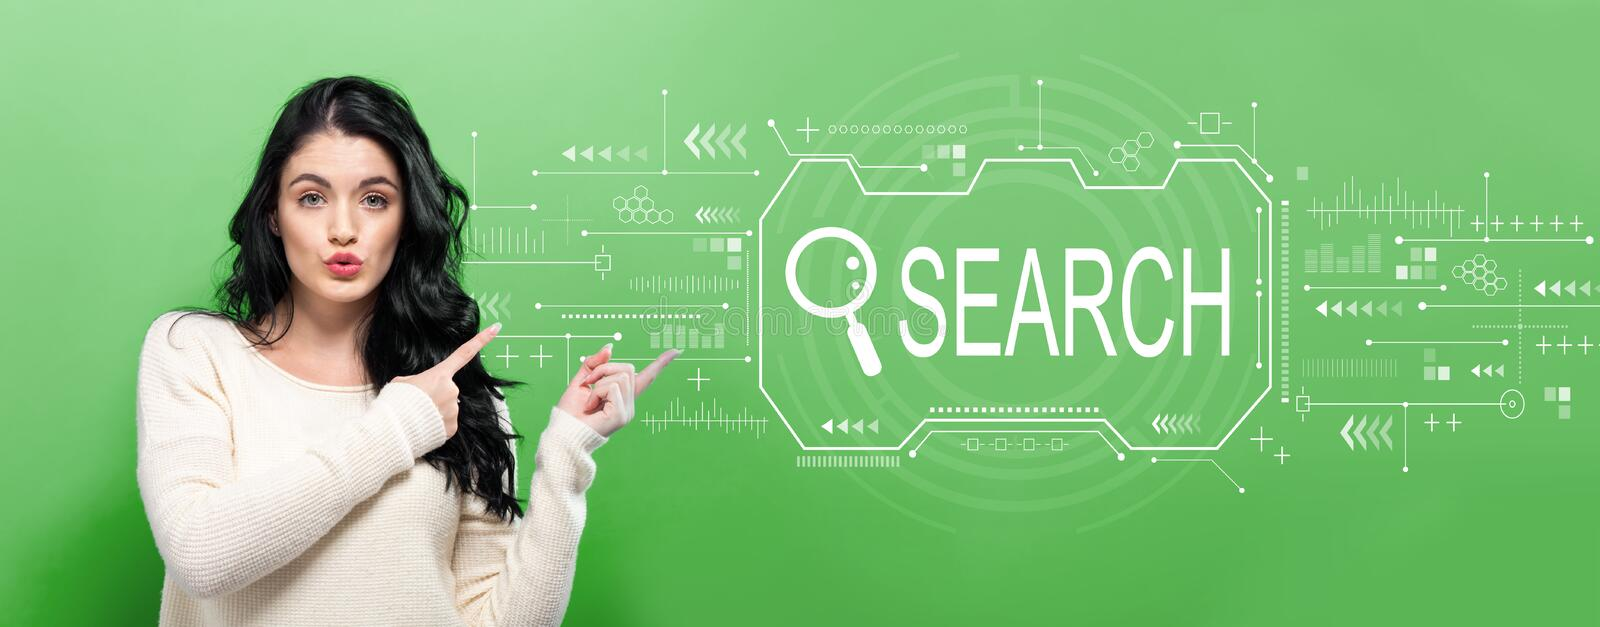 Searching theme with young woman. Pointing on a green background royalty free stock photo